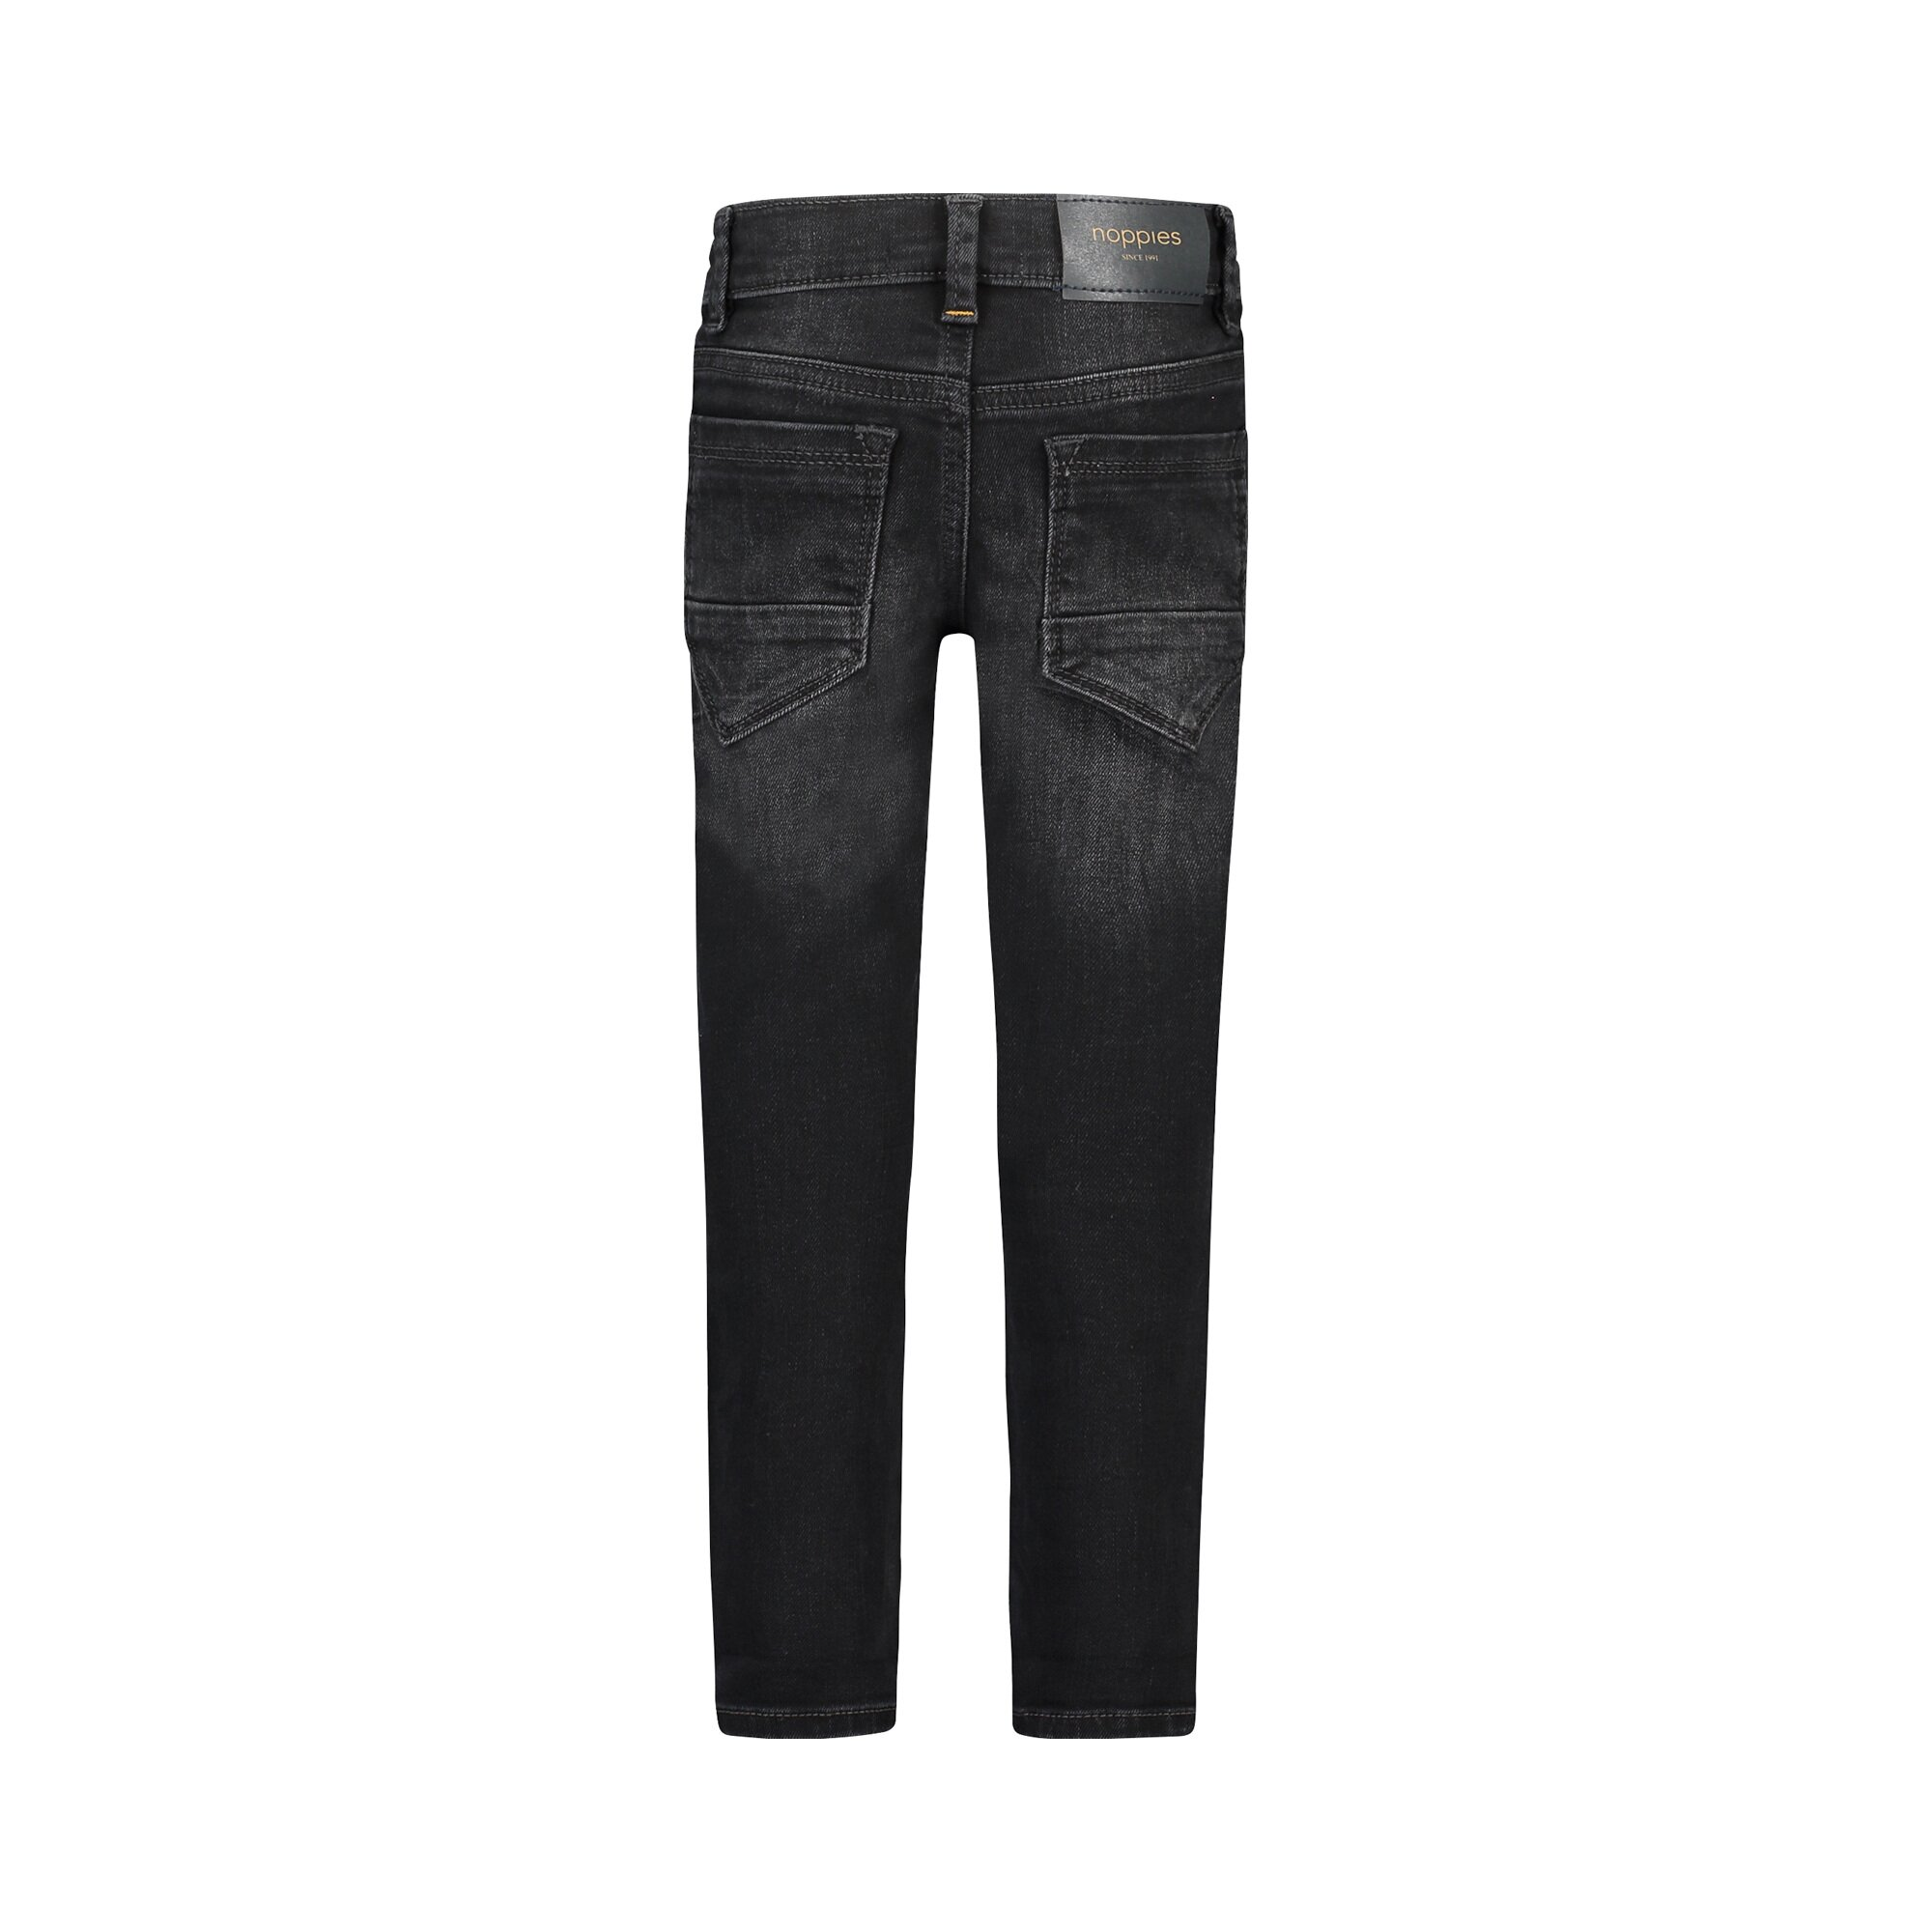 noppies-jeans-5-pocket